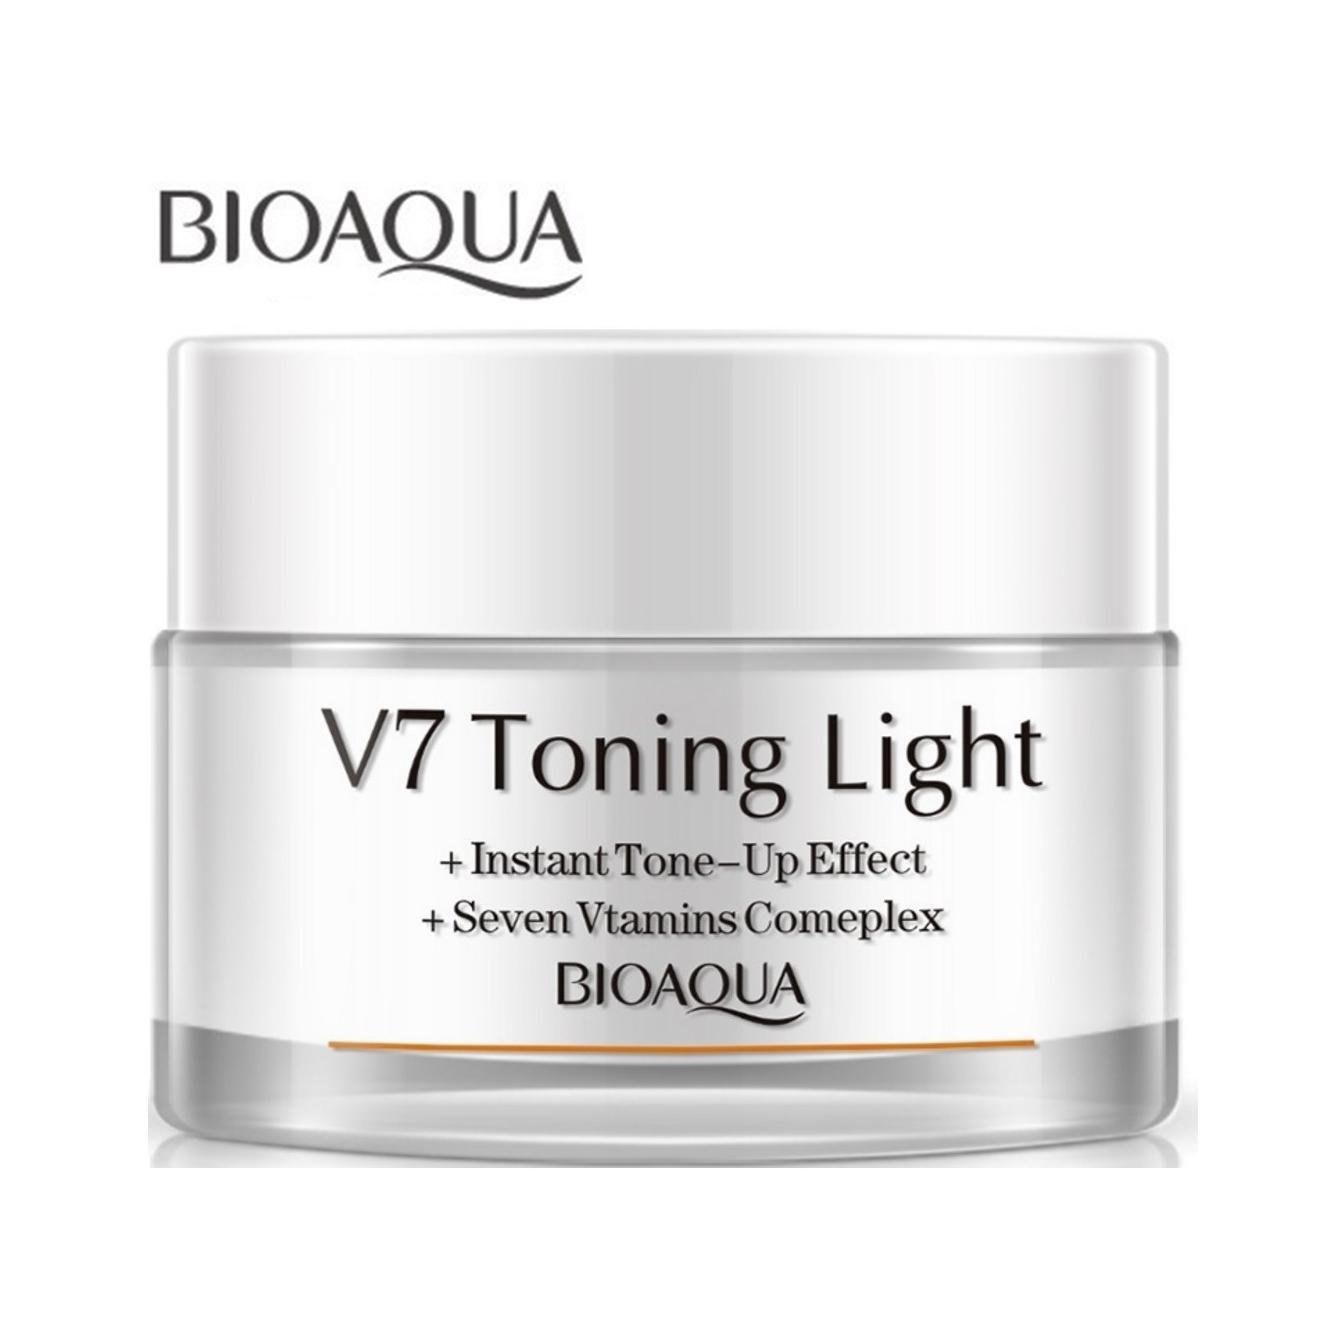 Bioaqua V7 Toning Light Cream Price In Bangladesh Bd 50 Gm